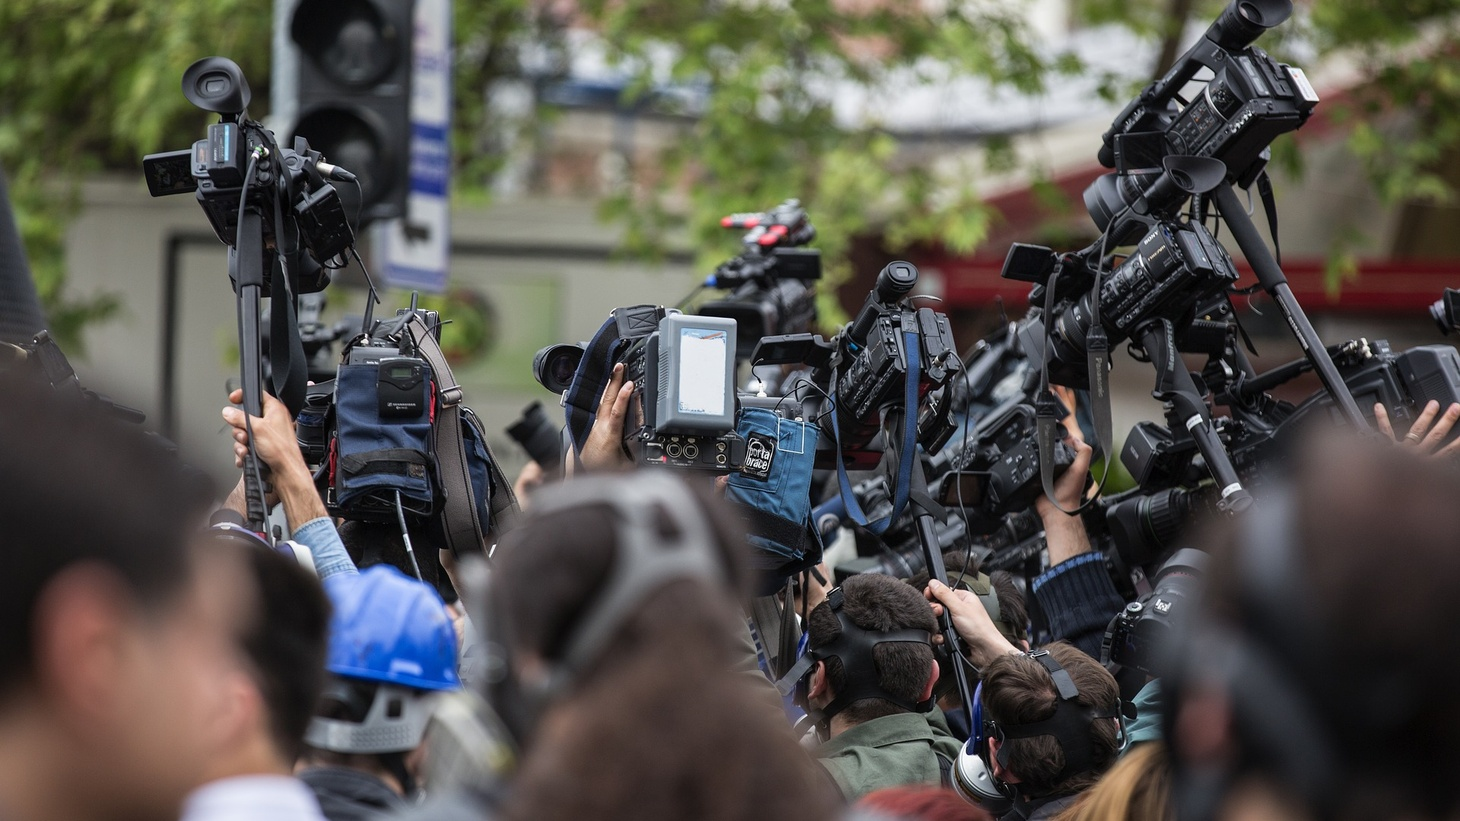 What First Amendment rights do journalists have while covering protests and political events?